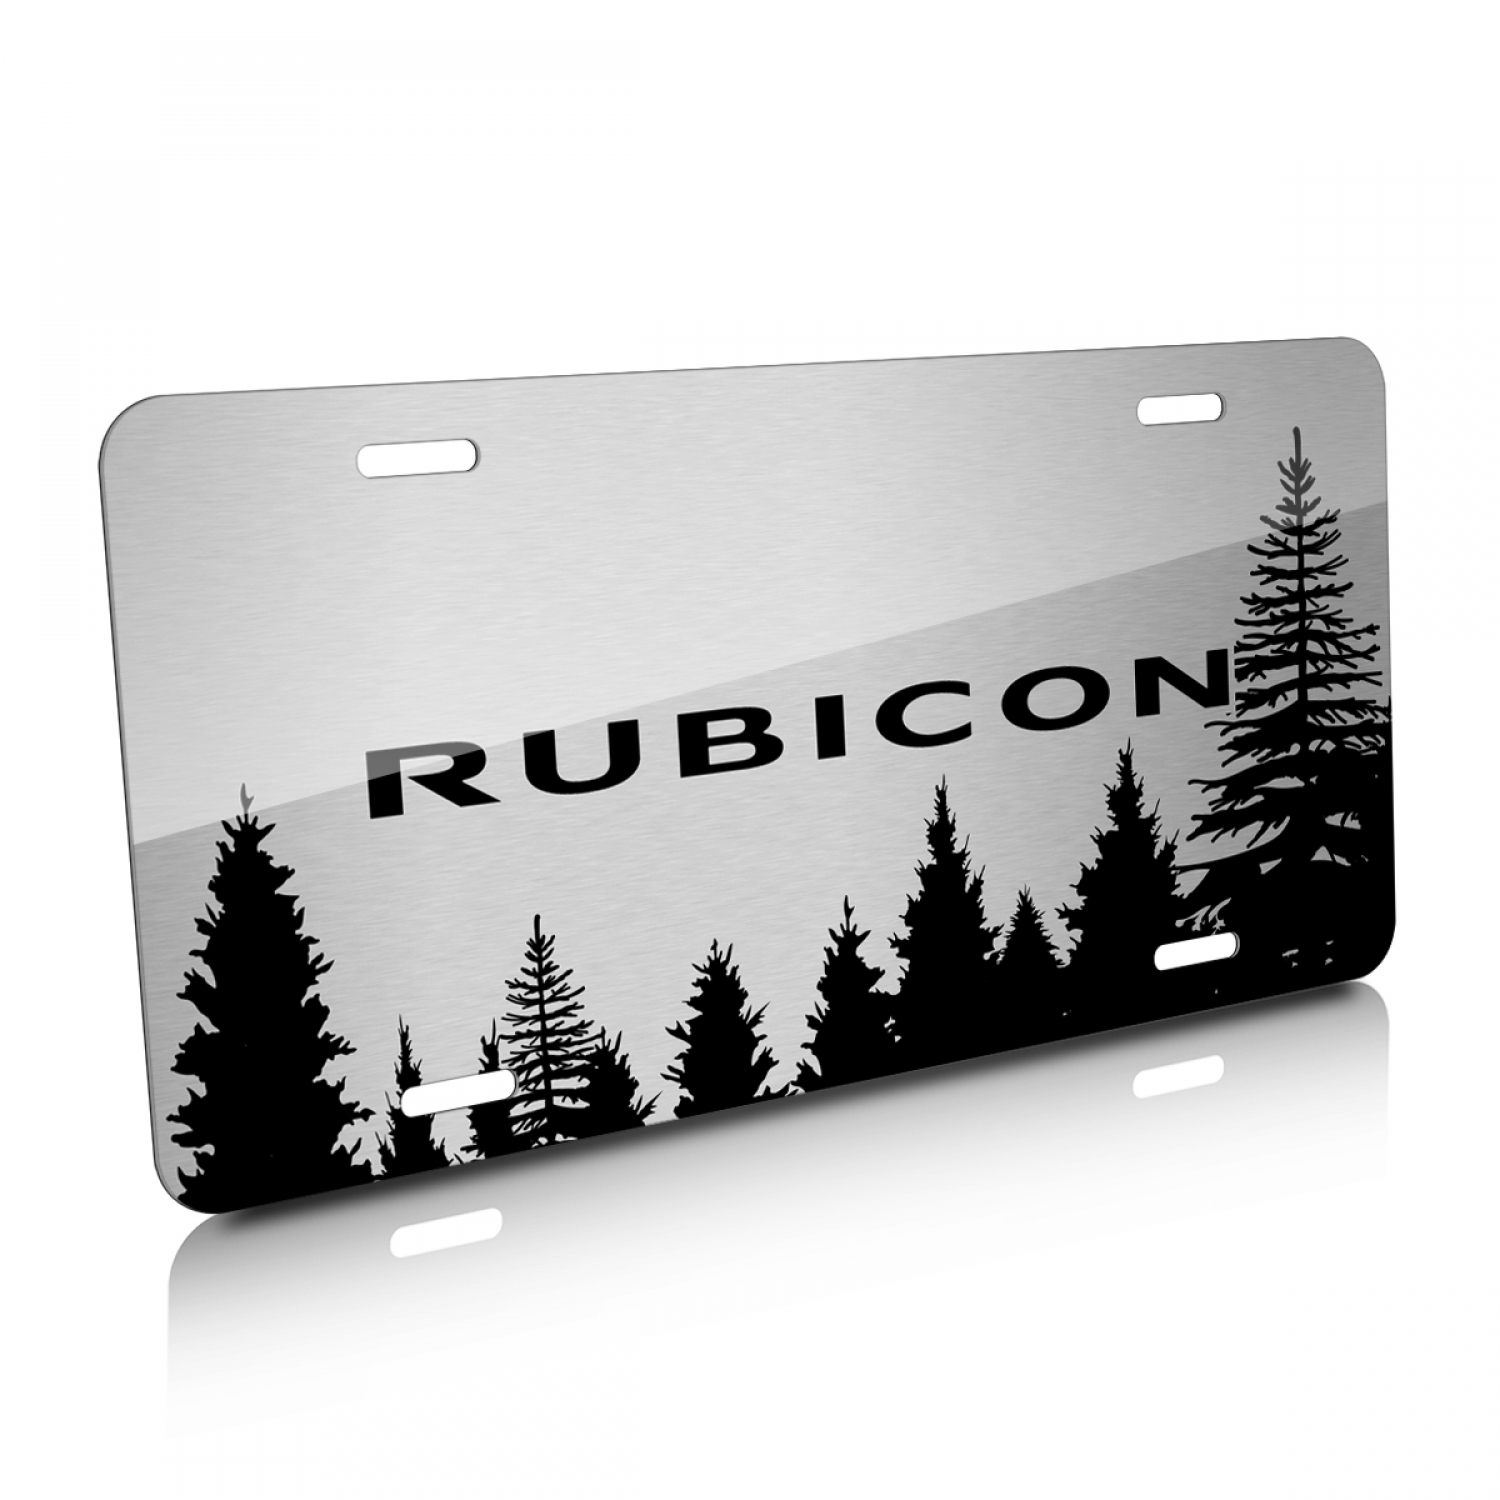 Jeep Rubicon Forrest Sillhouette Graphic Brush Aluminum License Plate